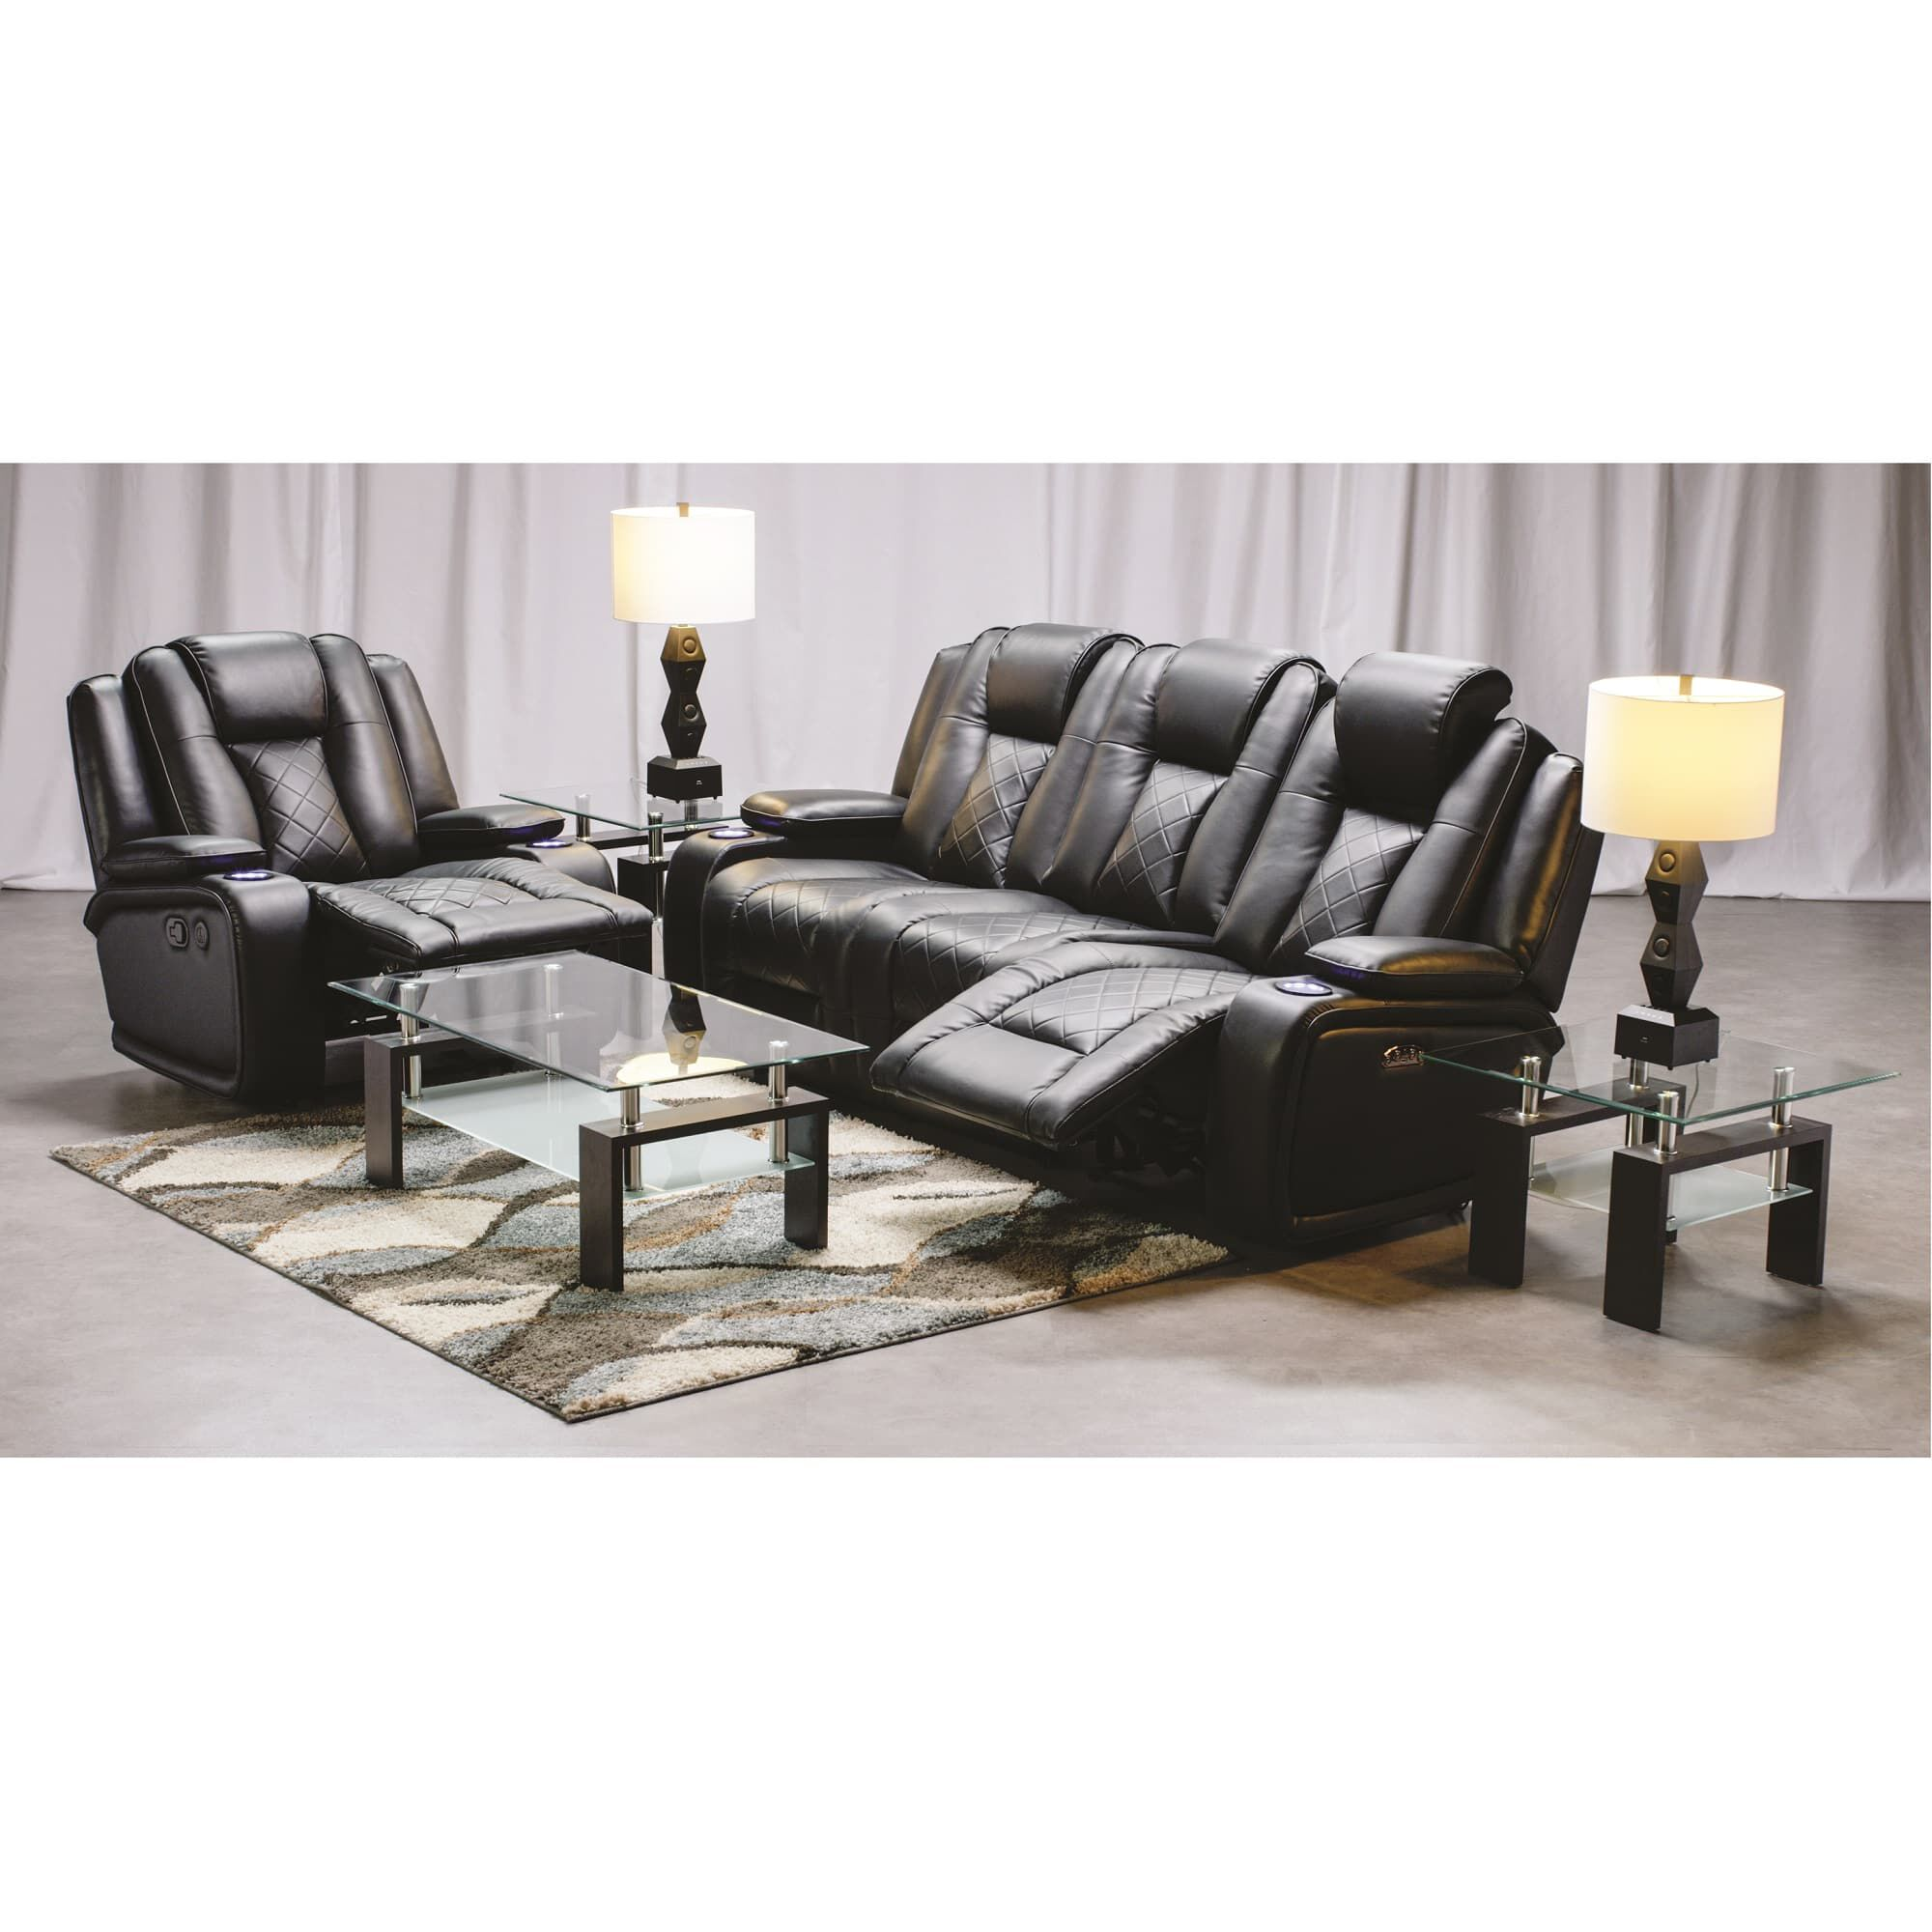 synergy recliner chair reclining rocking home furnishings 2 piece transformer living room collection